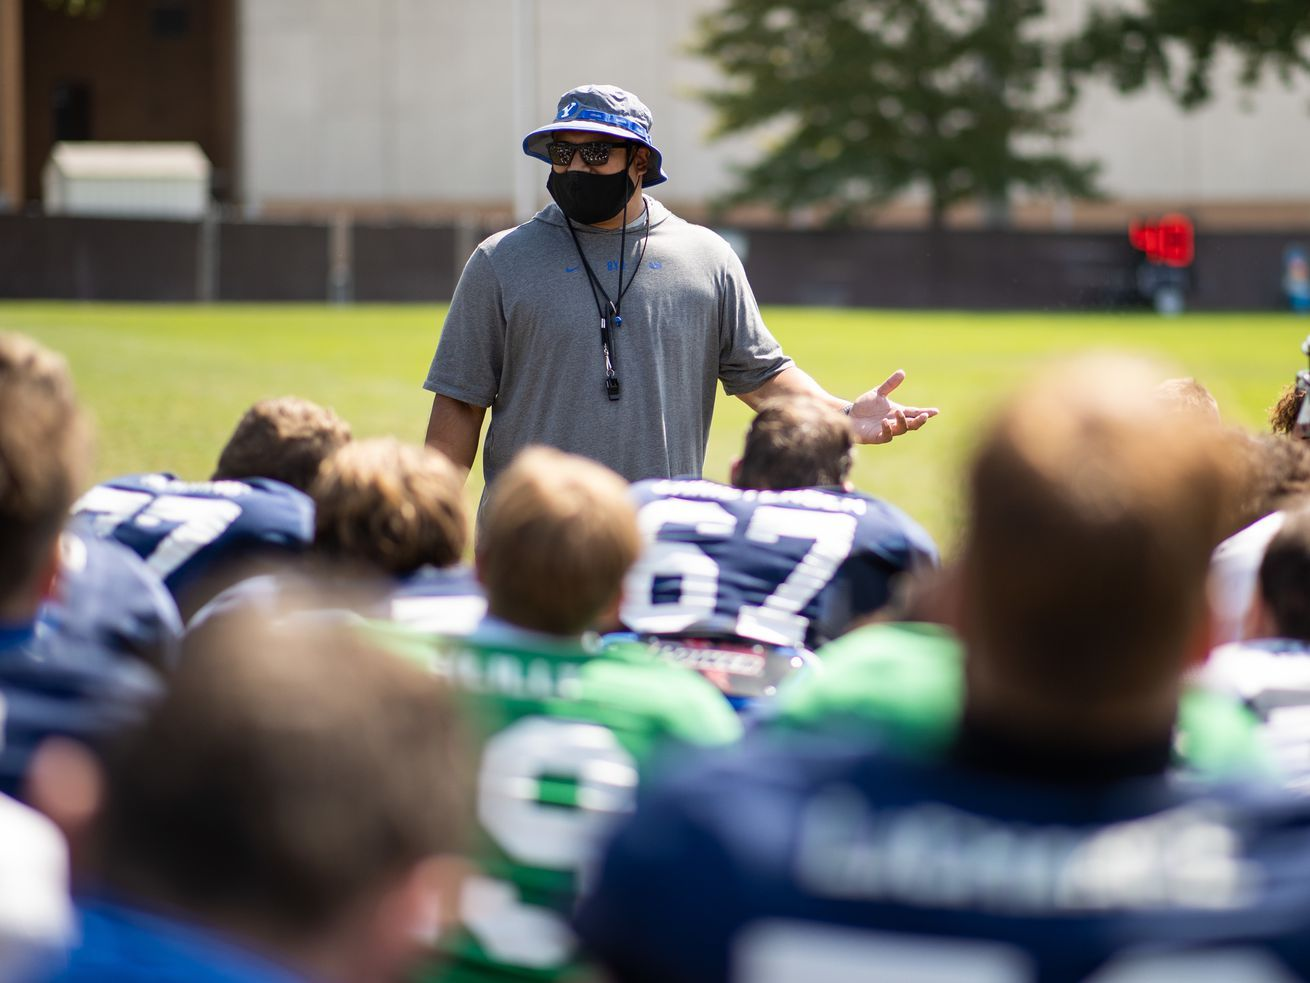 What A Moment Plenty At Stake For Byu Head Coach Kalani Sitake In Season Opener In 2020 Byu Football Navy Football Sports